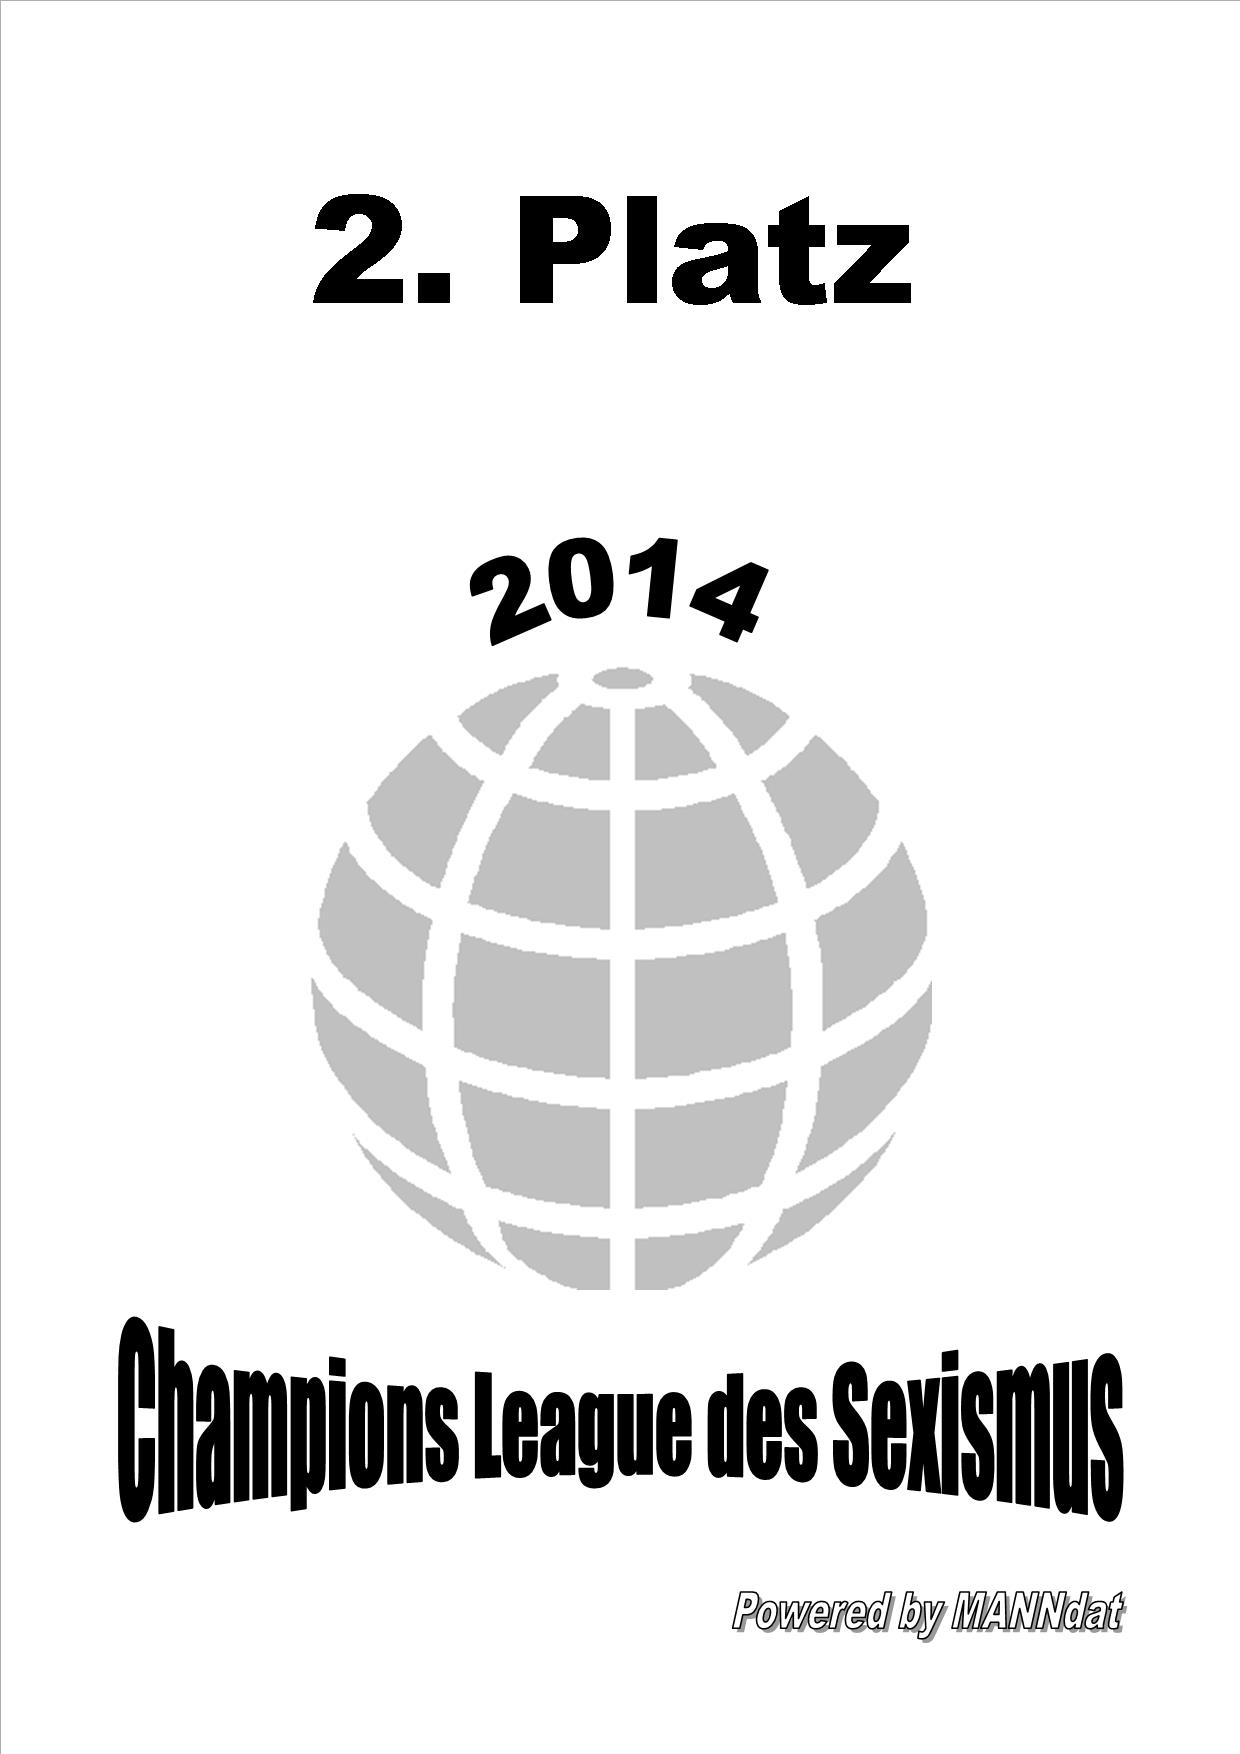 Chanpions League des Sexismus, zweiter Platz